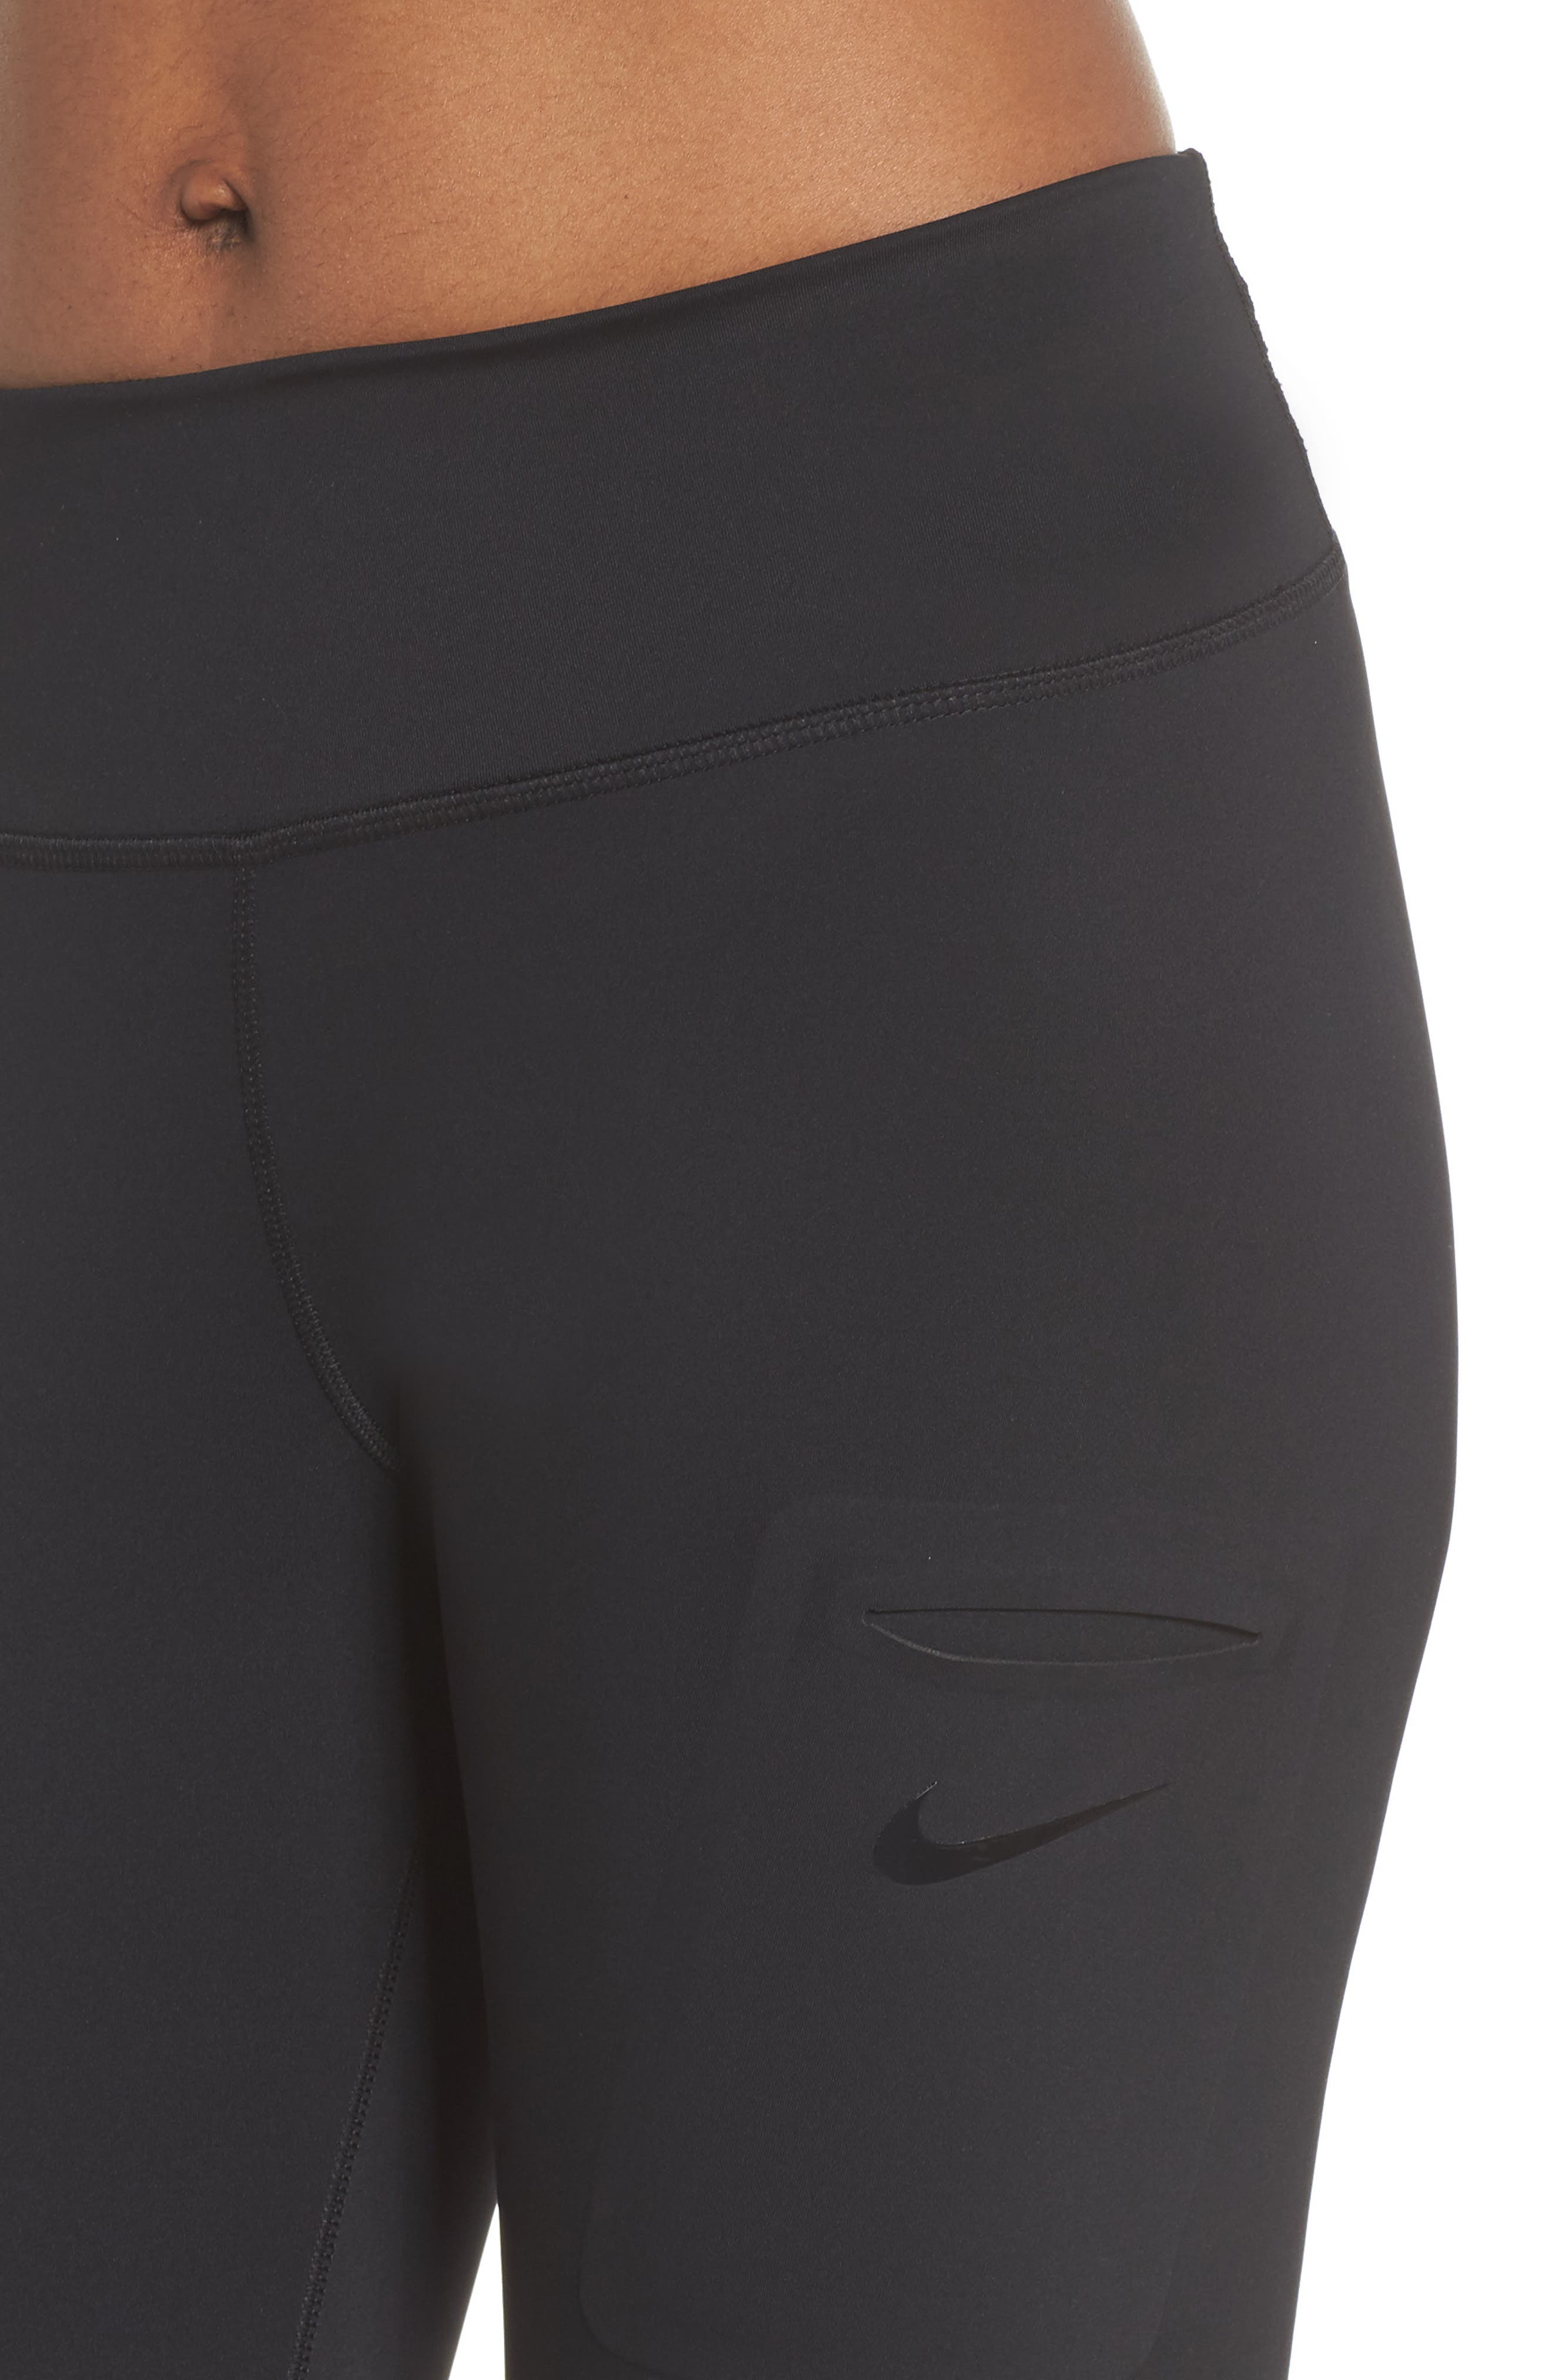 Power Tights,                             Alternate thumbnail 4, color,                             BLACK/ CLEAR